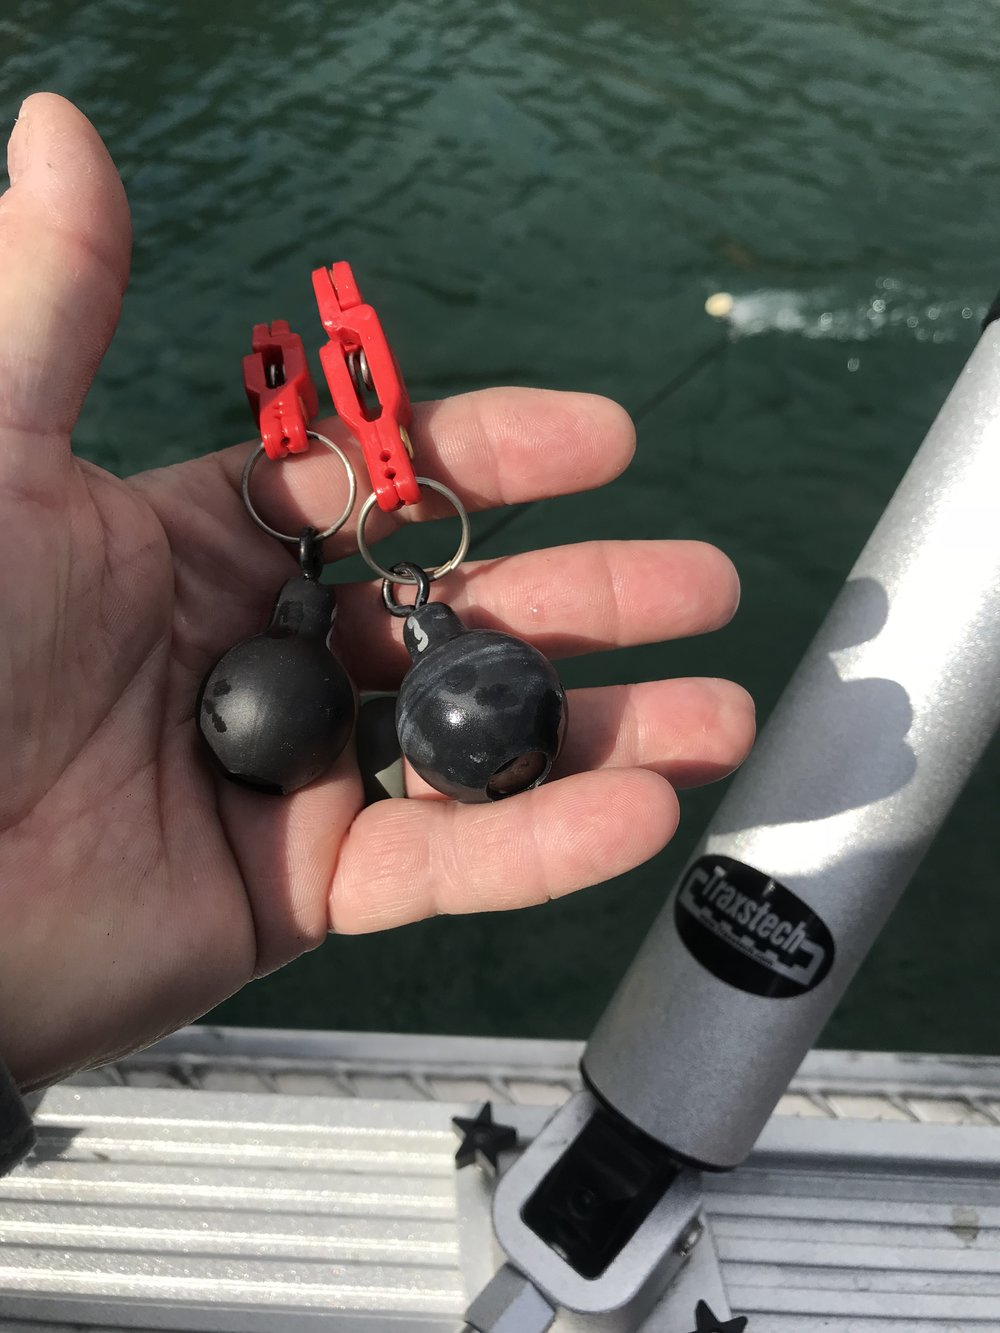 Eco Line Weights are a very effective tool for catching fish on the lakes.